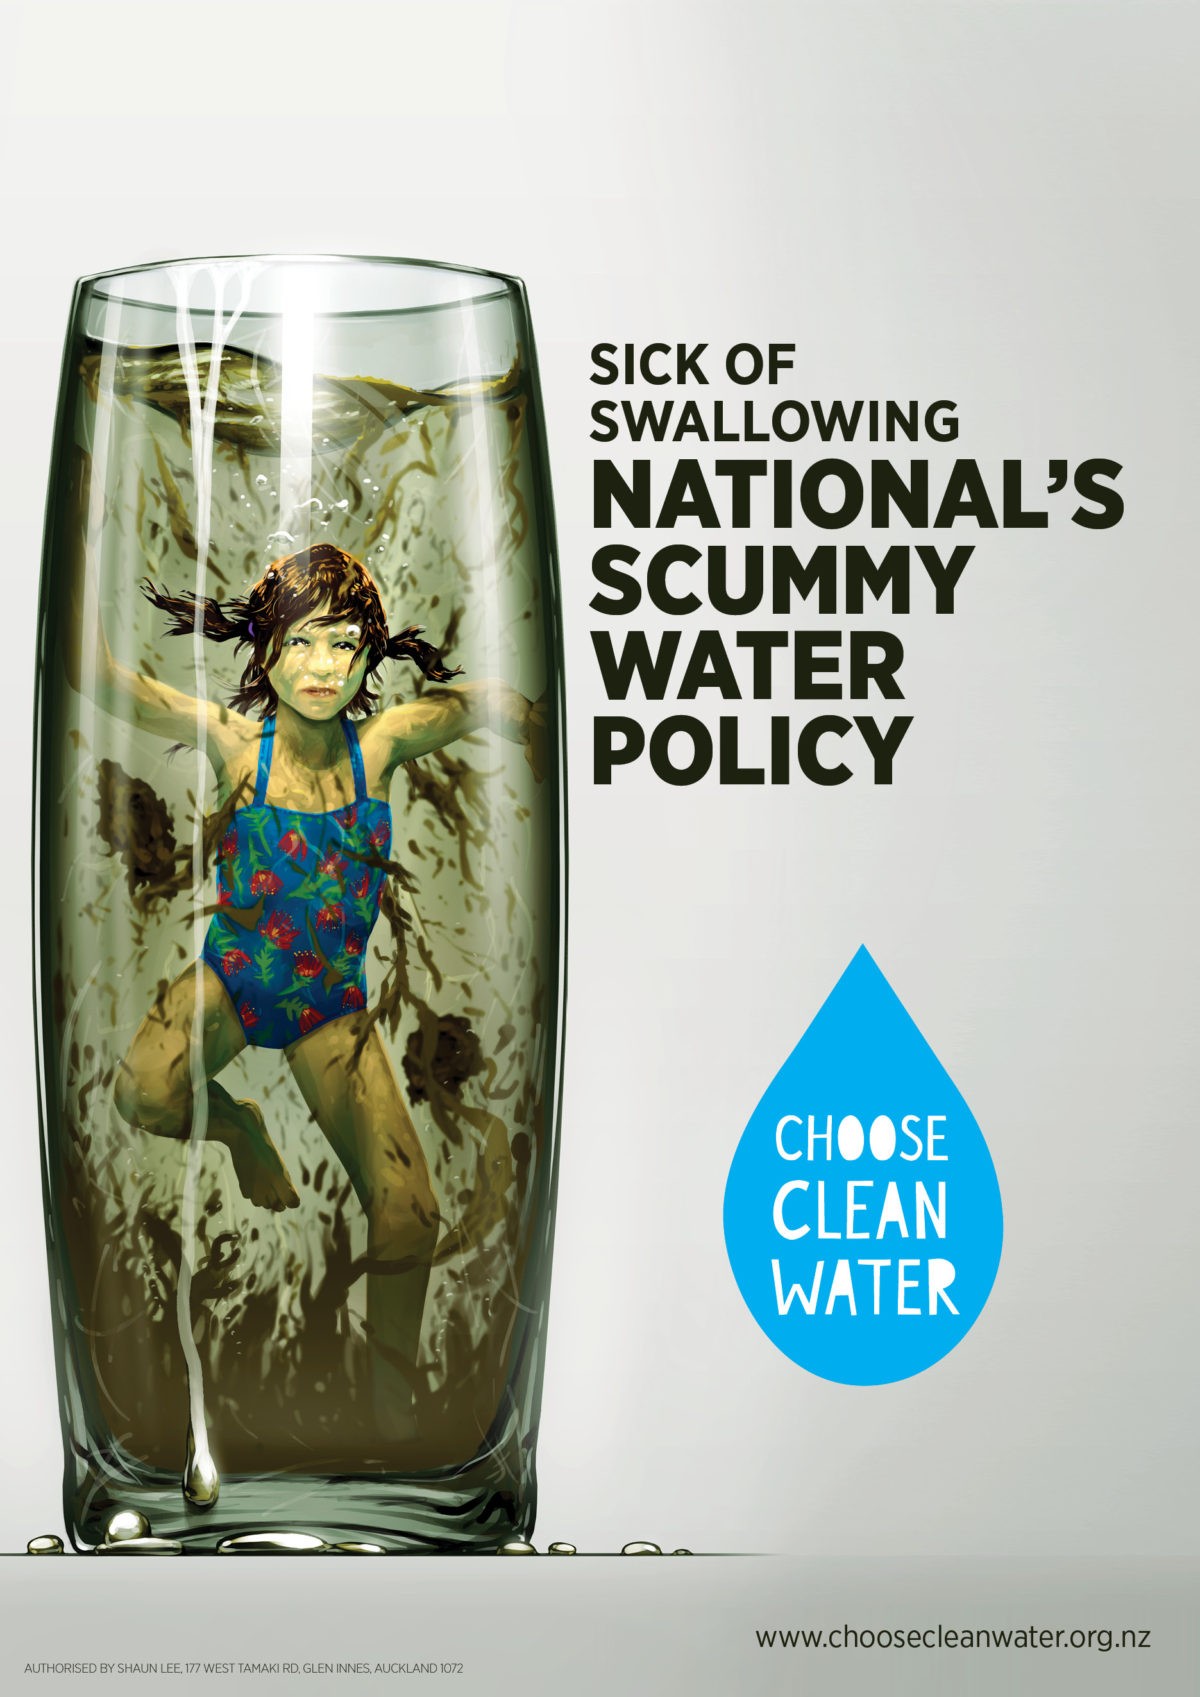 Sick of swallowing National's scummy water policy?